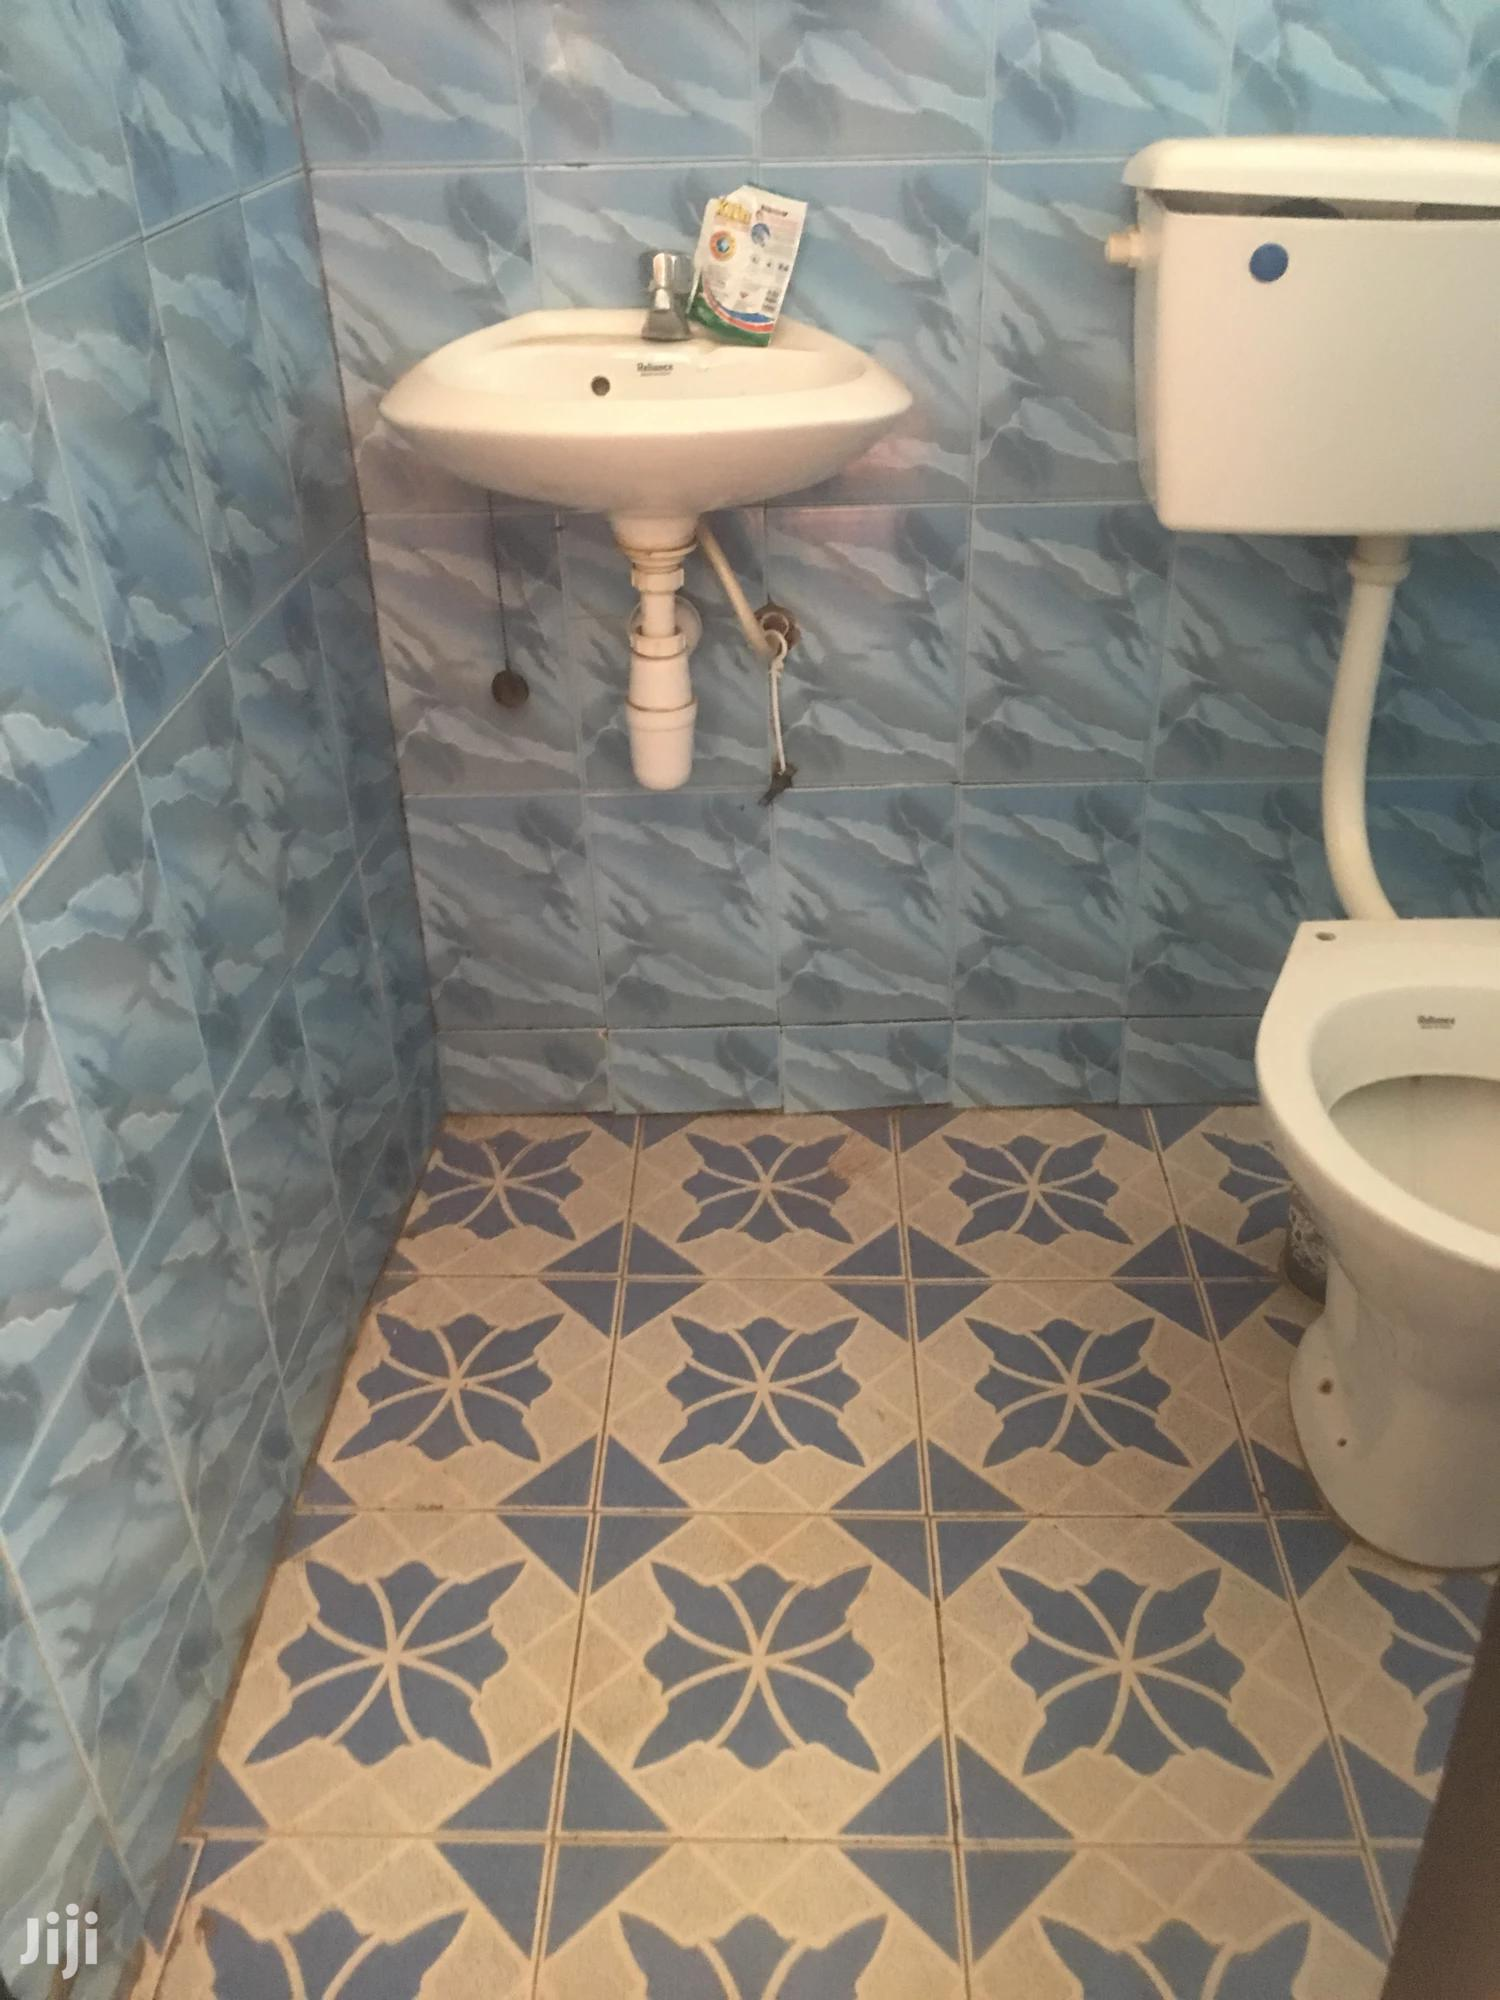 Marvlous Single Room Selfcontain 4rent Spintex 1yr | Houses & Apartments For Rent for sale in Tema Metropolitan, Greater Accra, Ghana